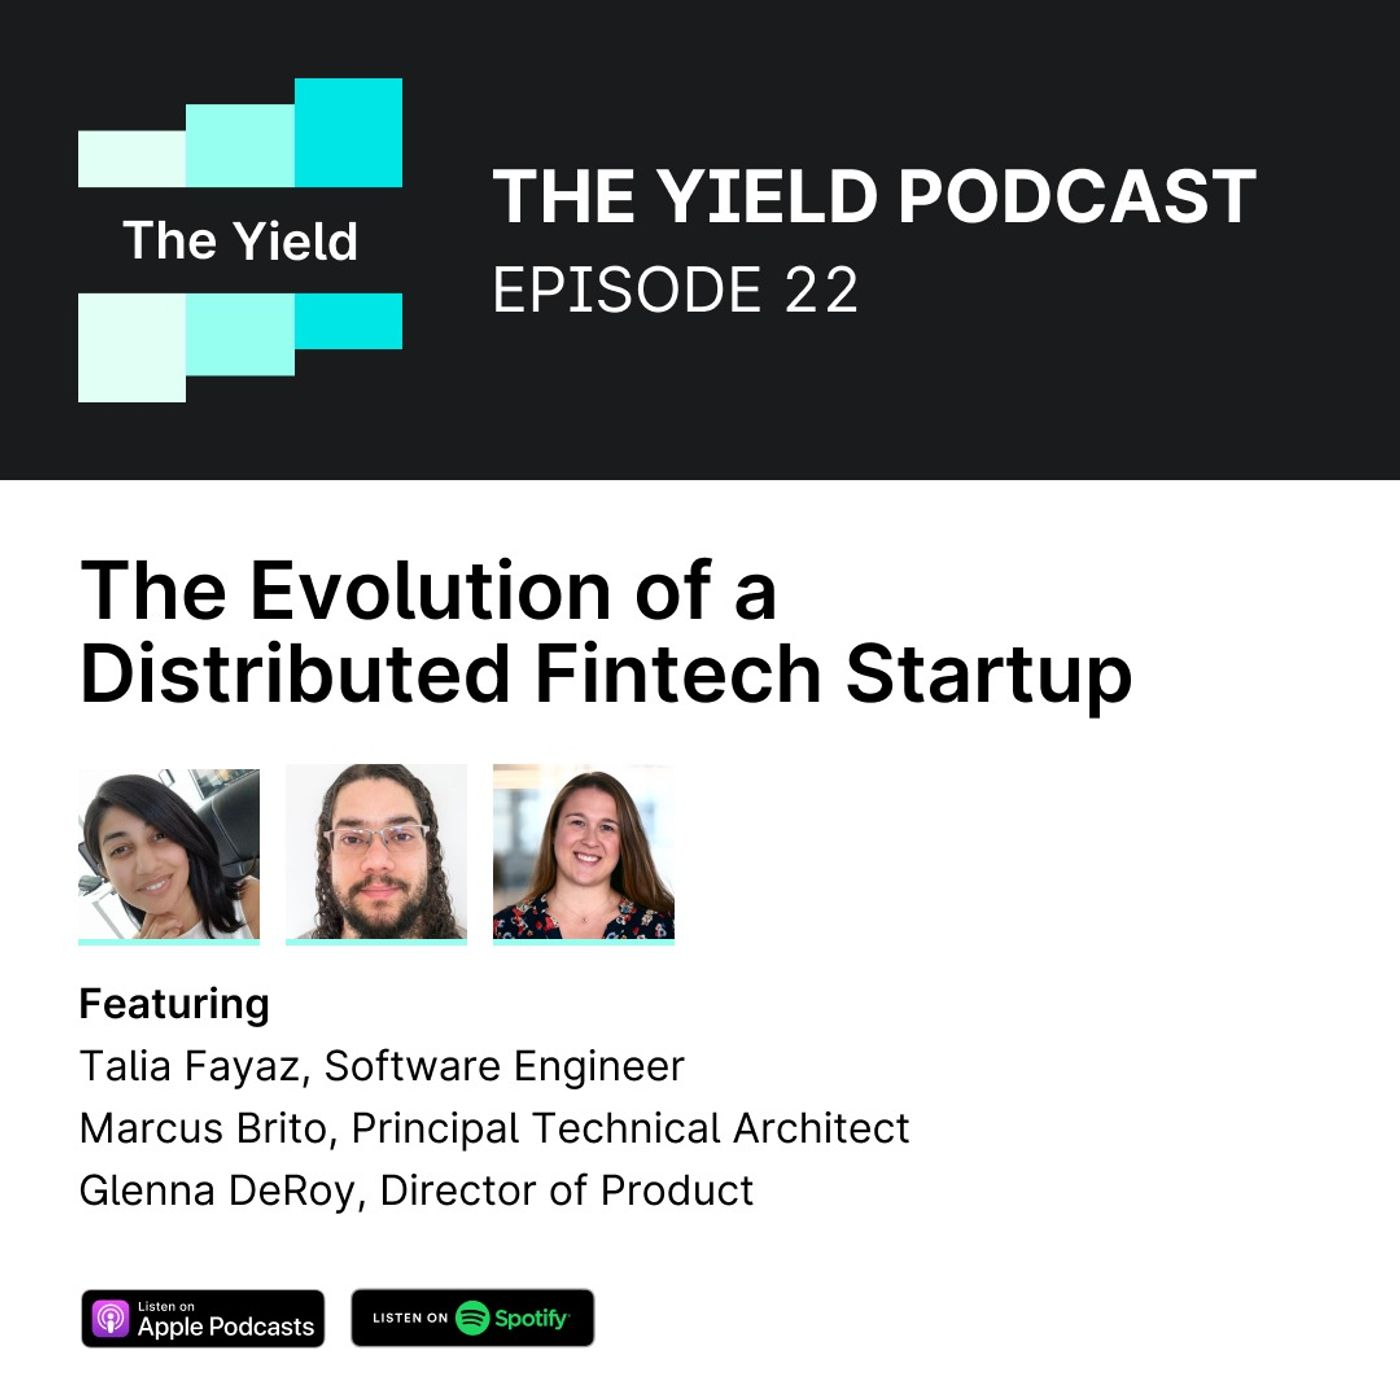 The Evolution of A Distributed Fintech Startup